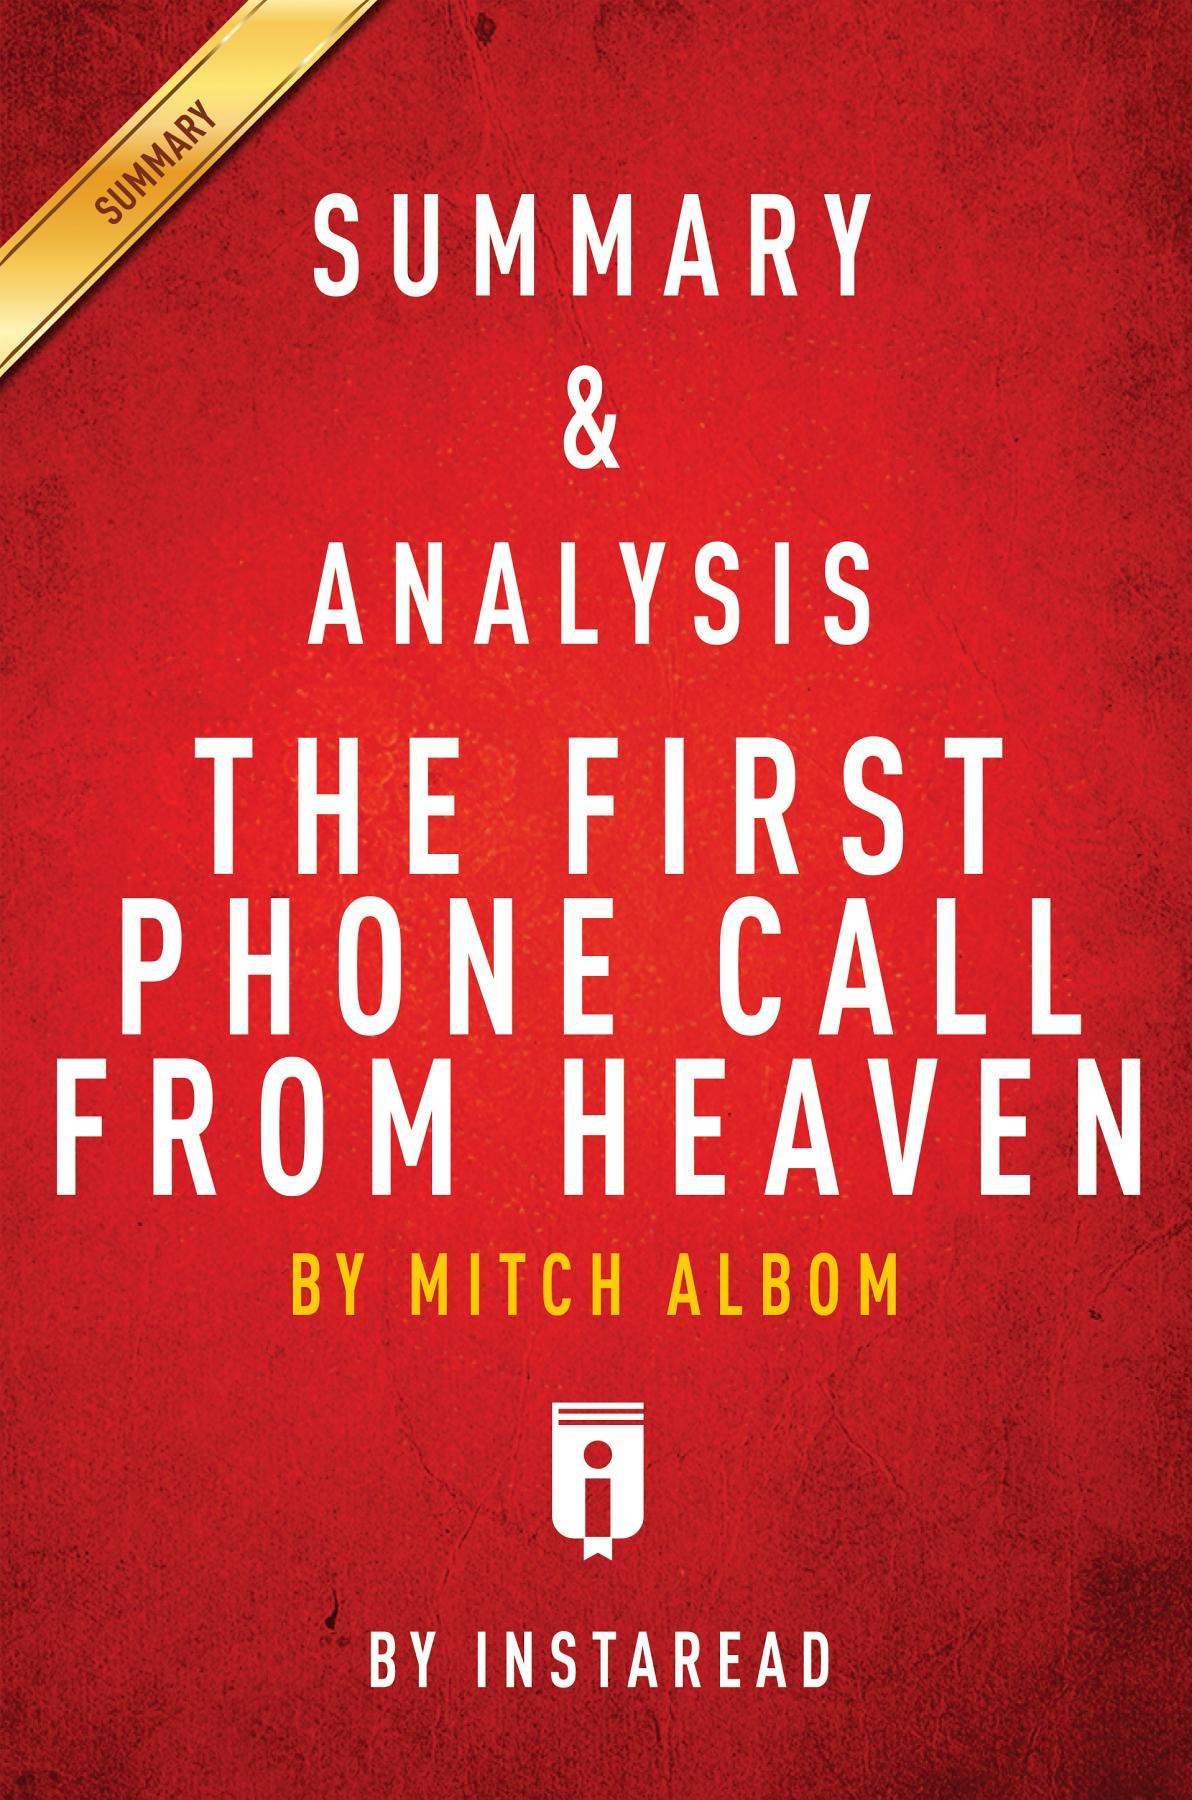 mitch albom analysis